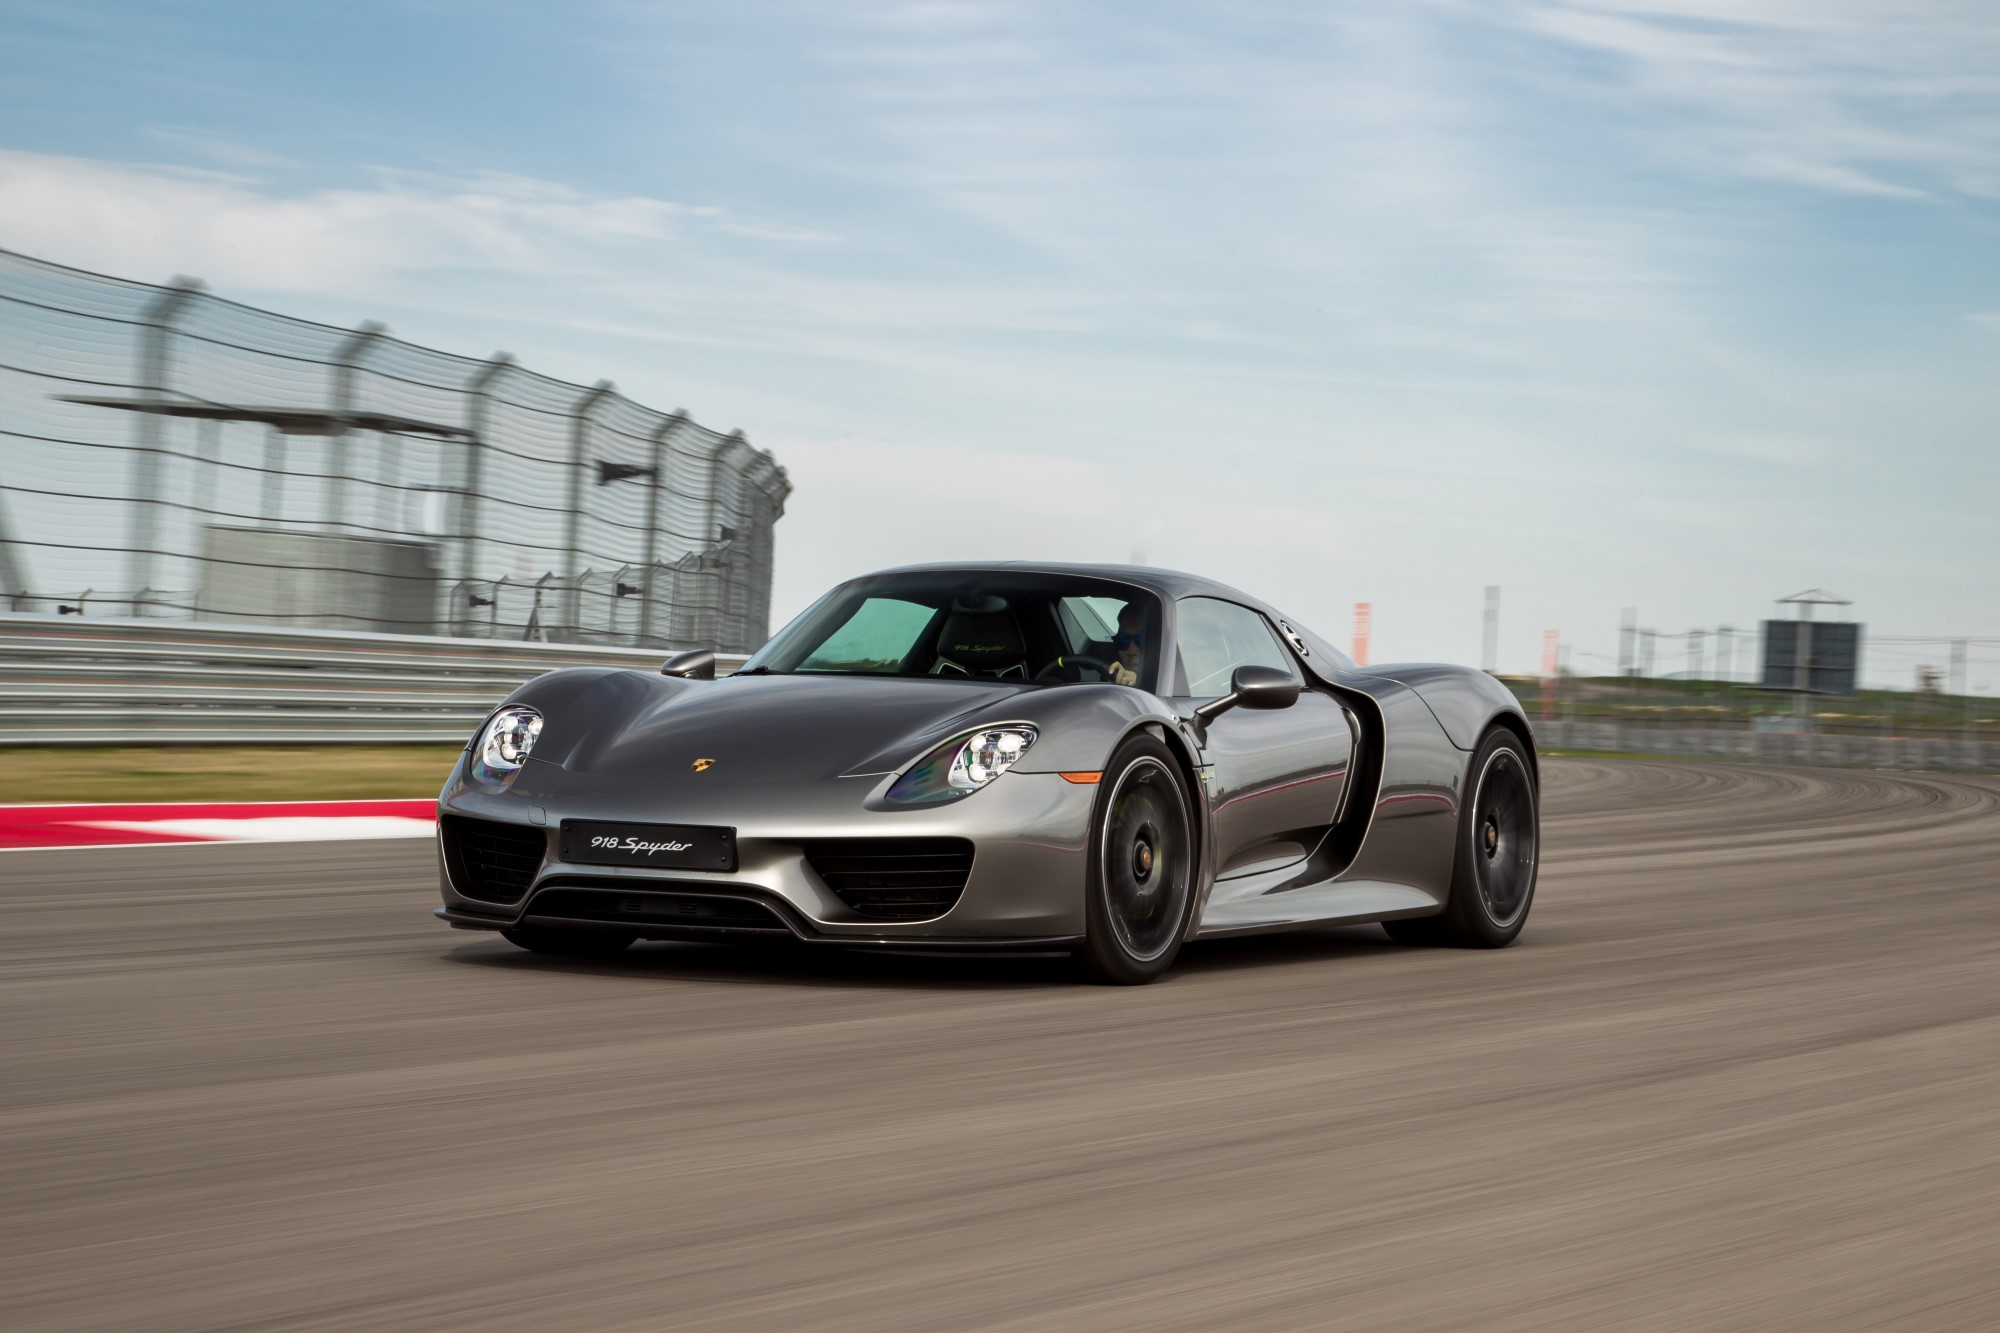 porsche 918 plug in hybrid supercar ends production after 918 units. Black Bedroom Furniture Sets. Home Design Ideas